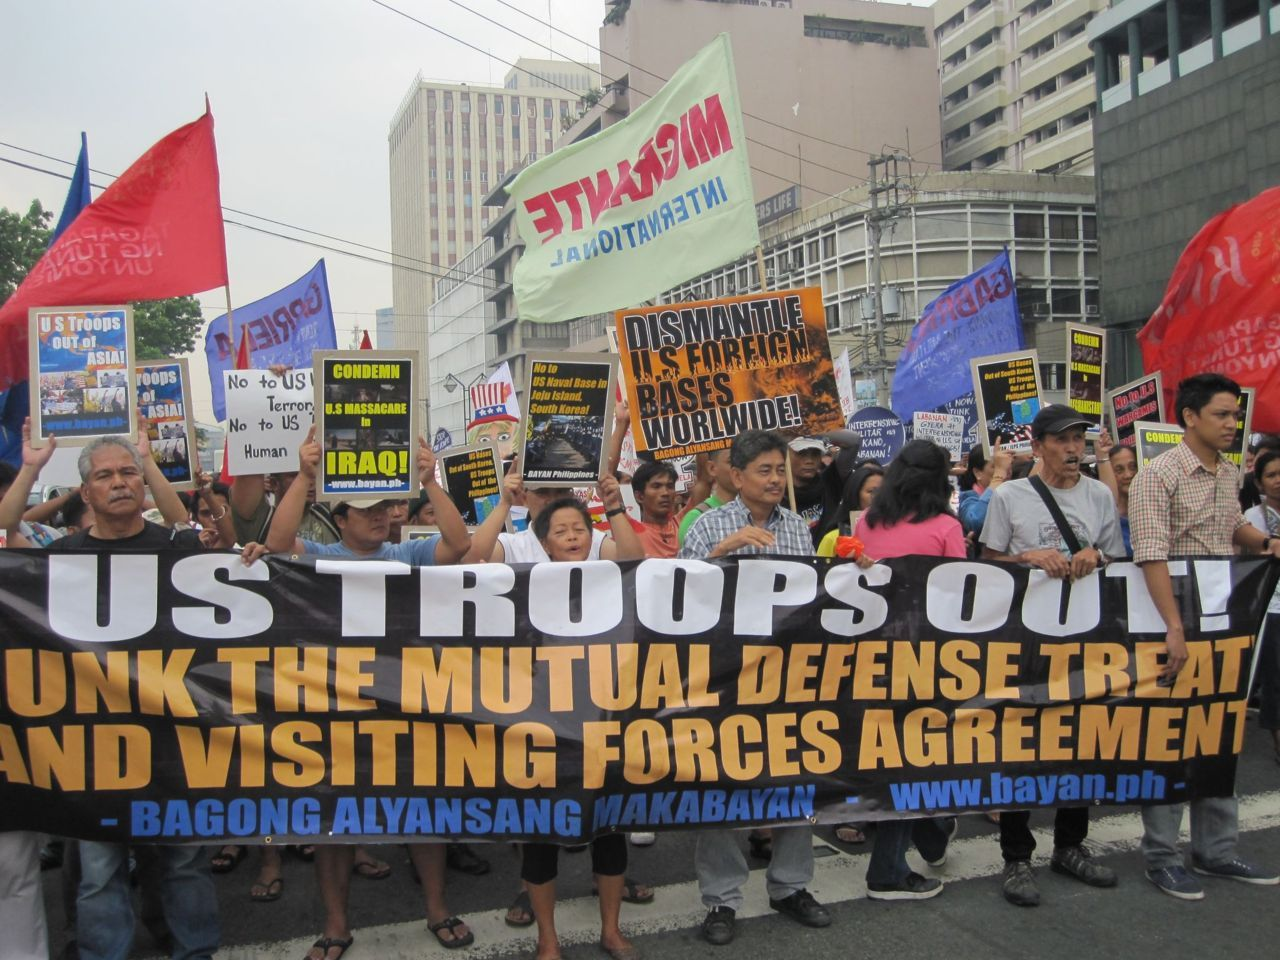 March against U.S. imperialist occupation of the Philippines